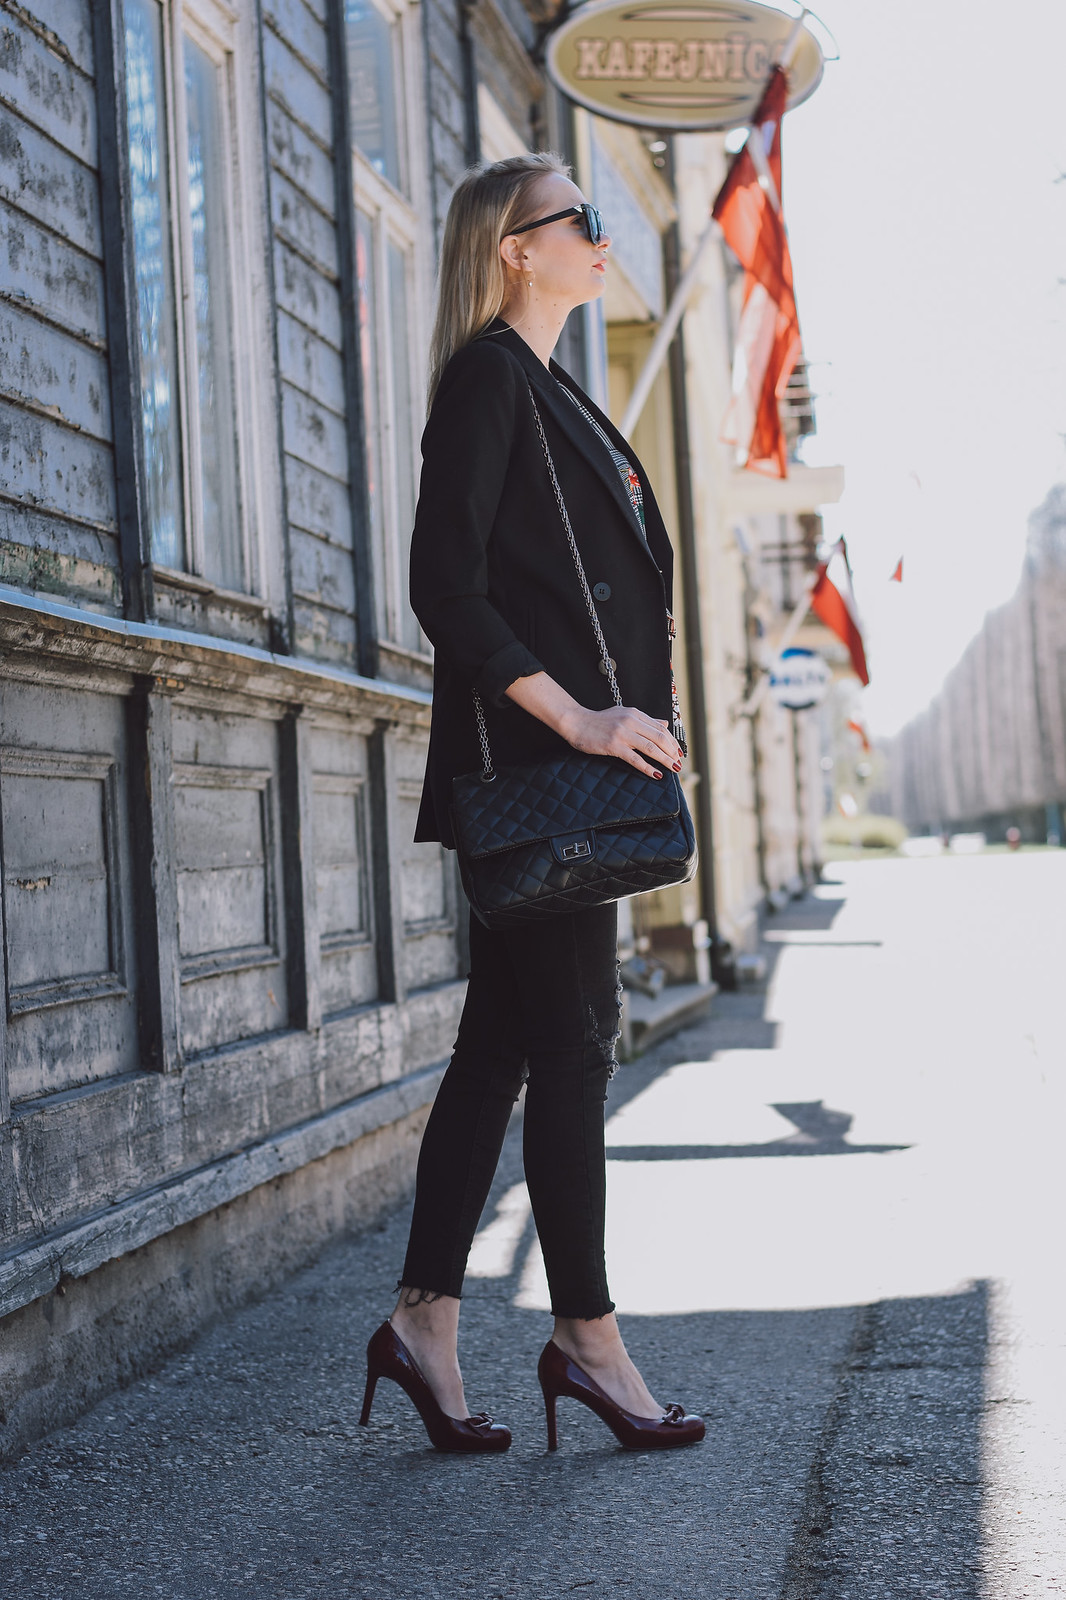 Fashion blogger from Latvia